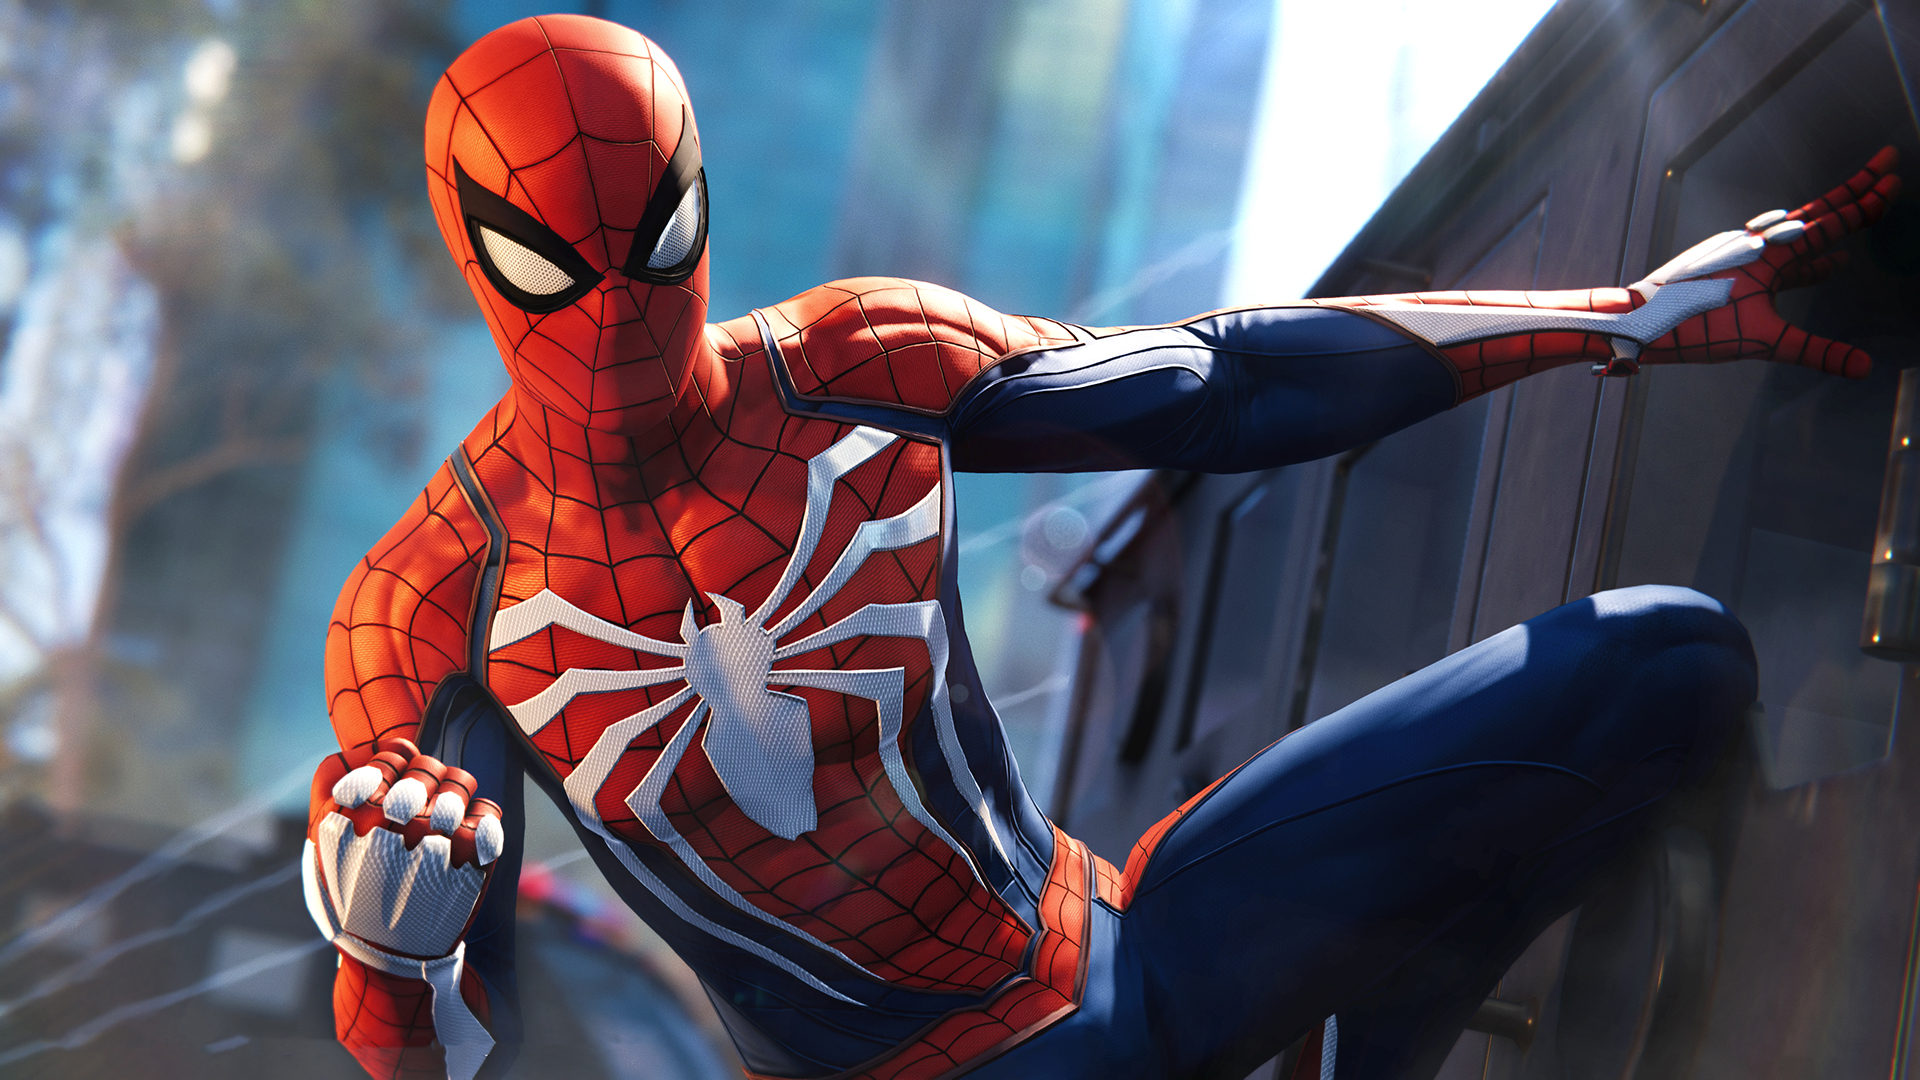 Marvels Spider Man Ps4 Game High Quality Resolution Wallpaper